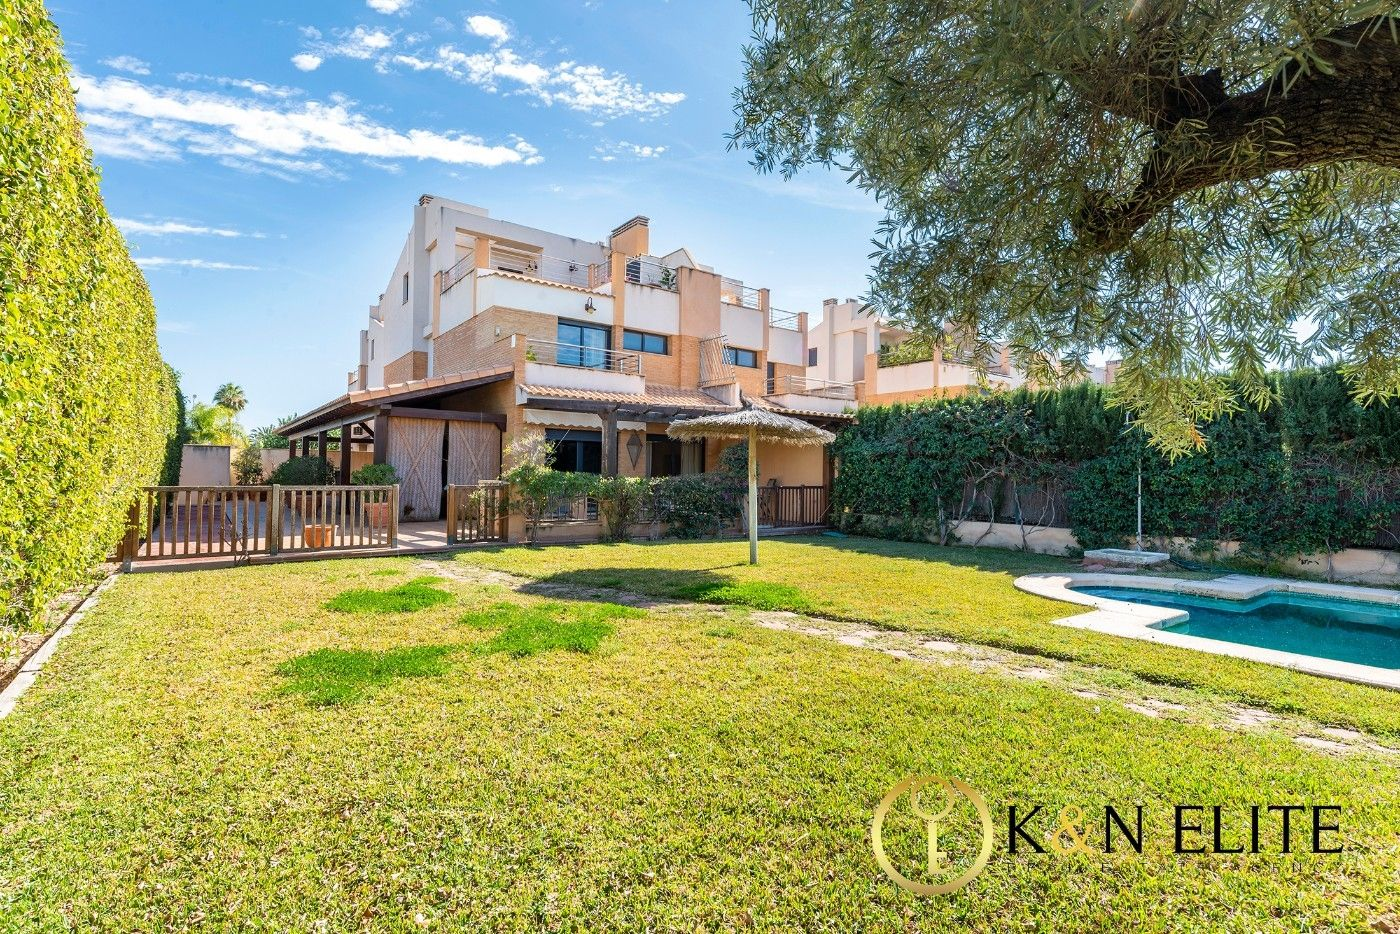 Semi detached house in Avenida fabraquer, 47. Fabuloso chalet en villa marco